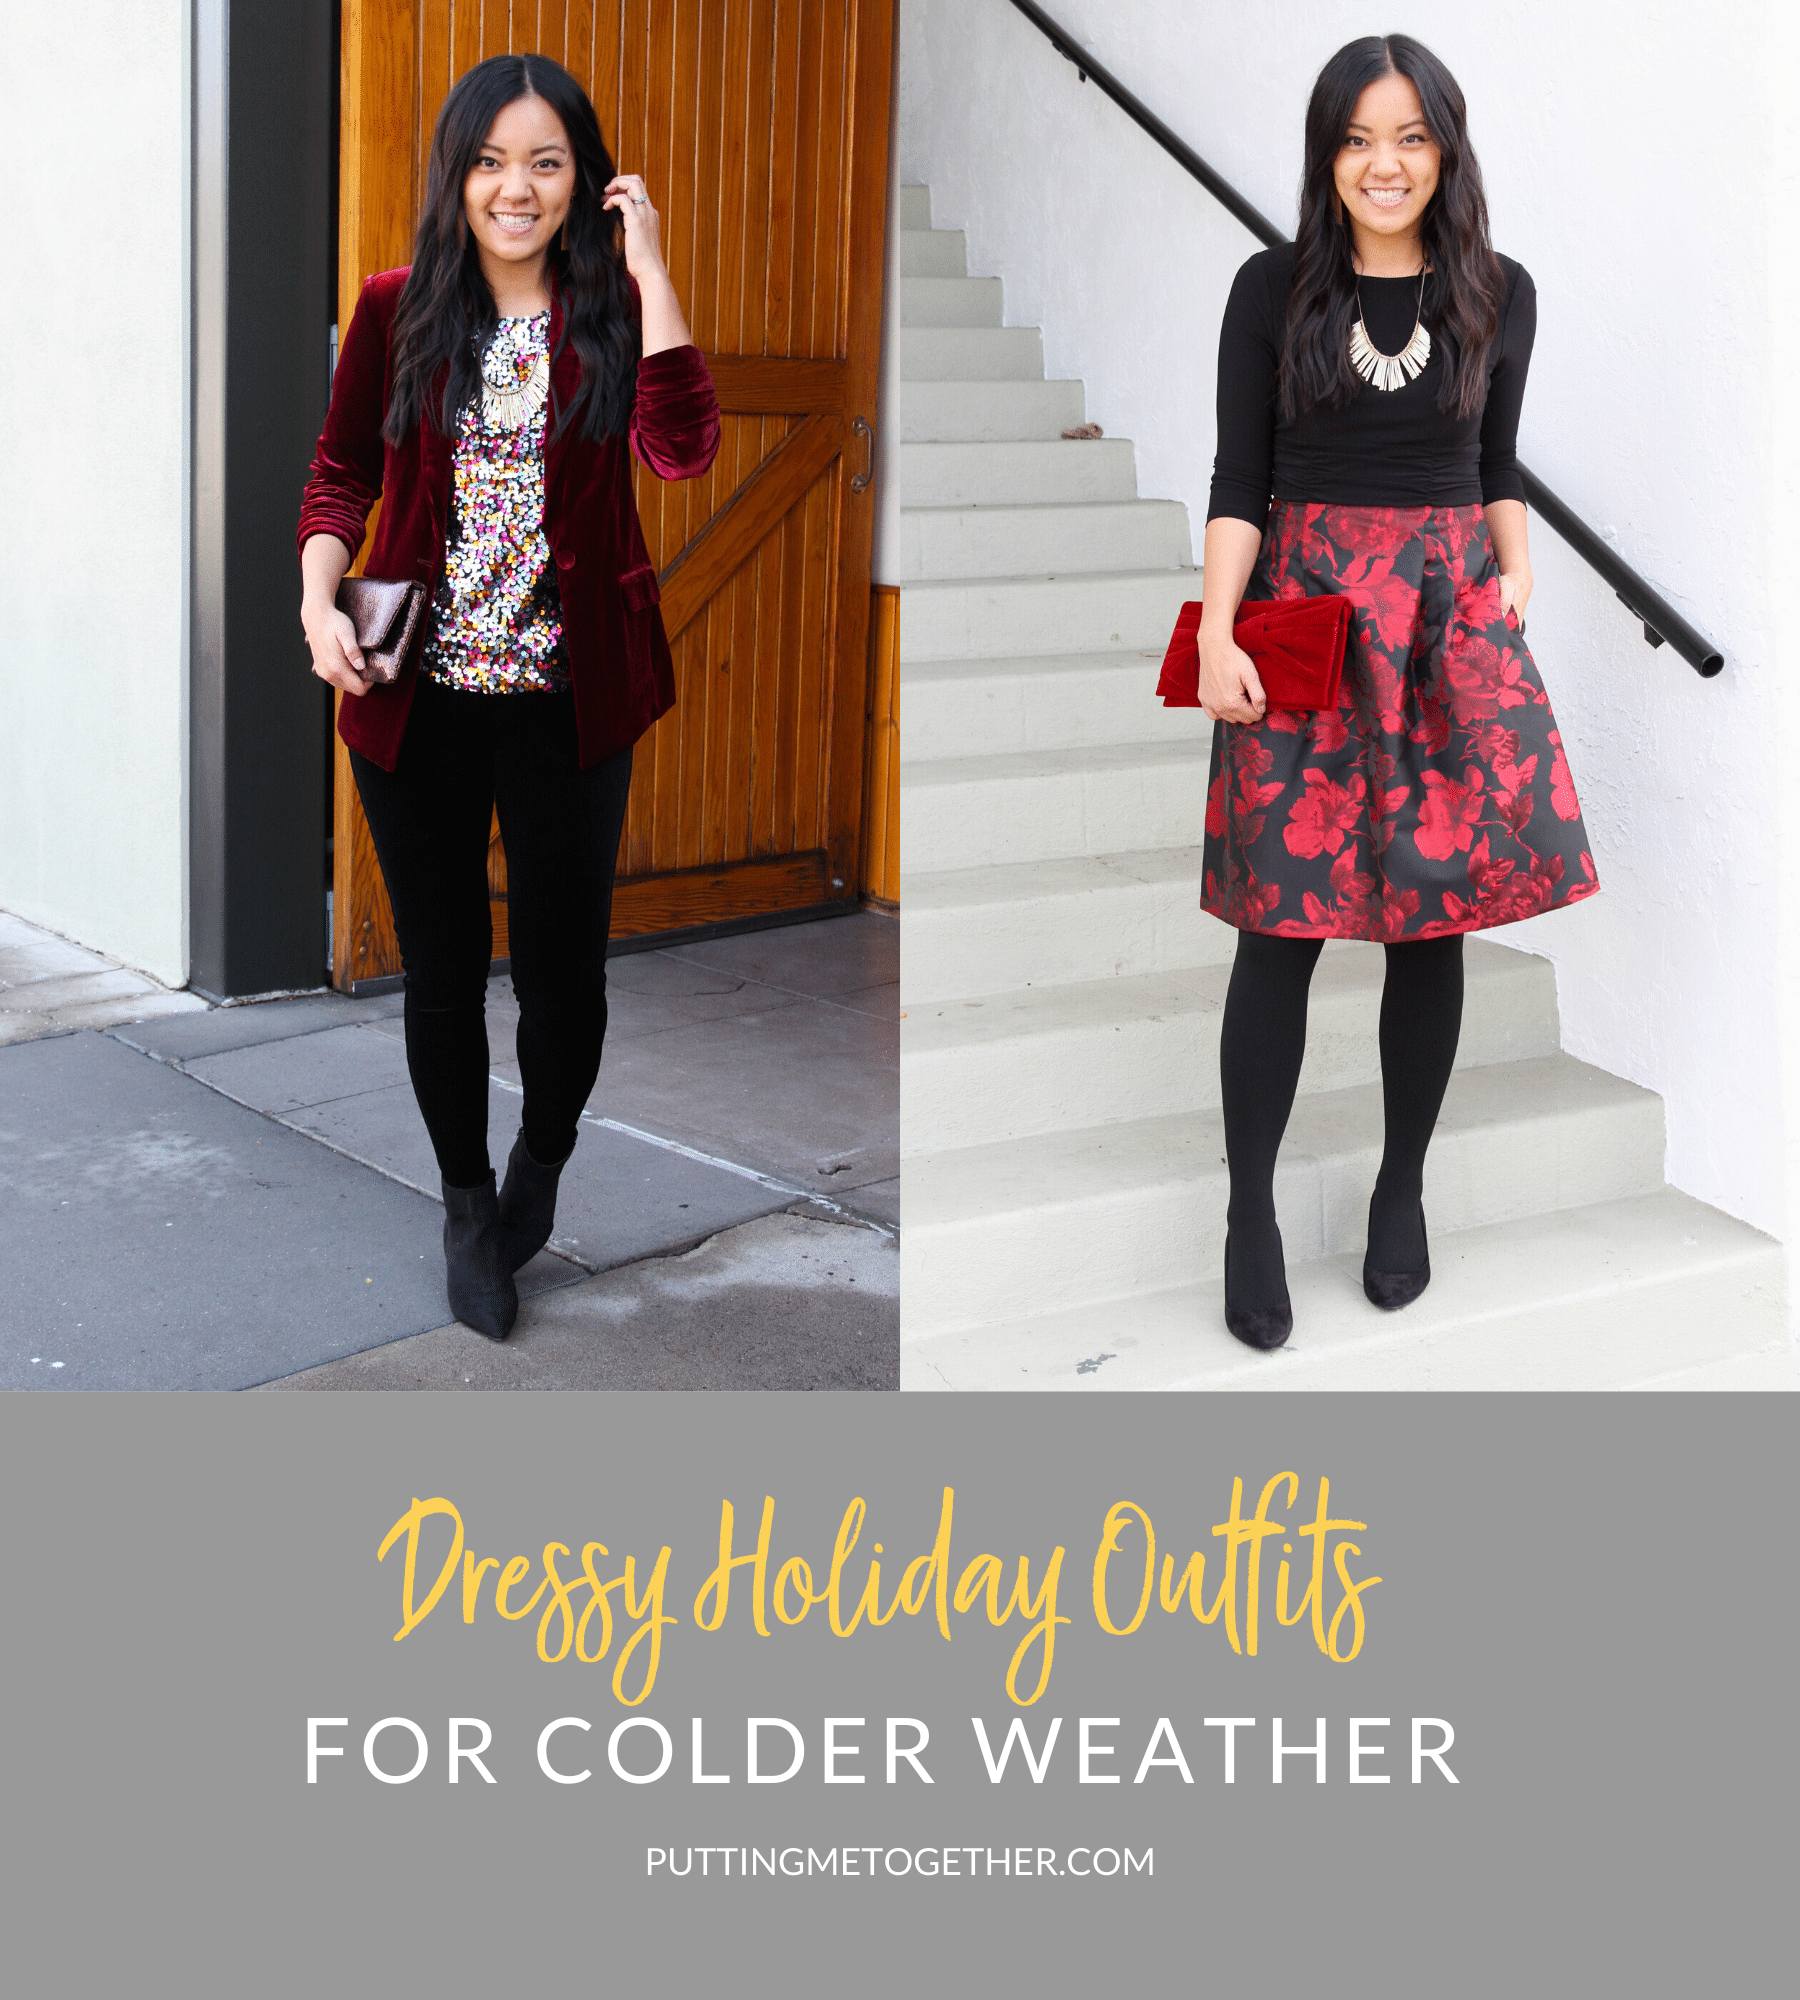 Dressy Holiday Outfits For Colder Weather